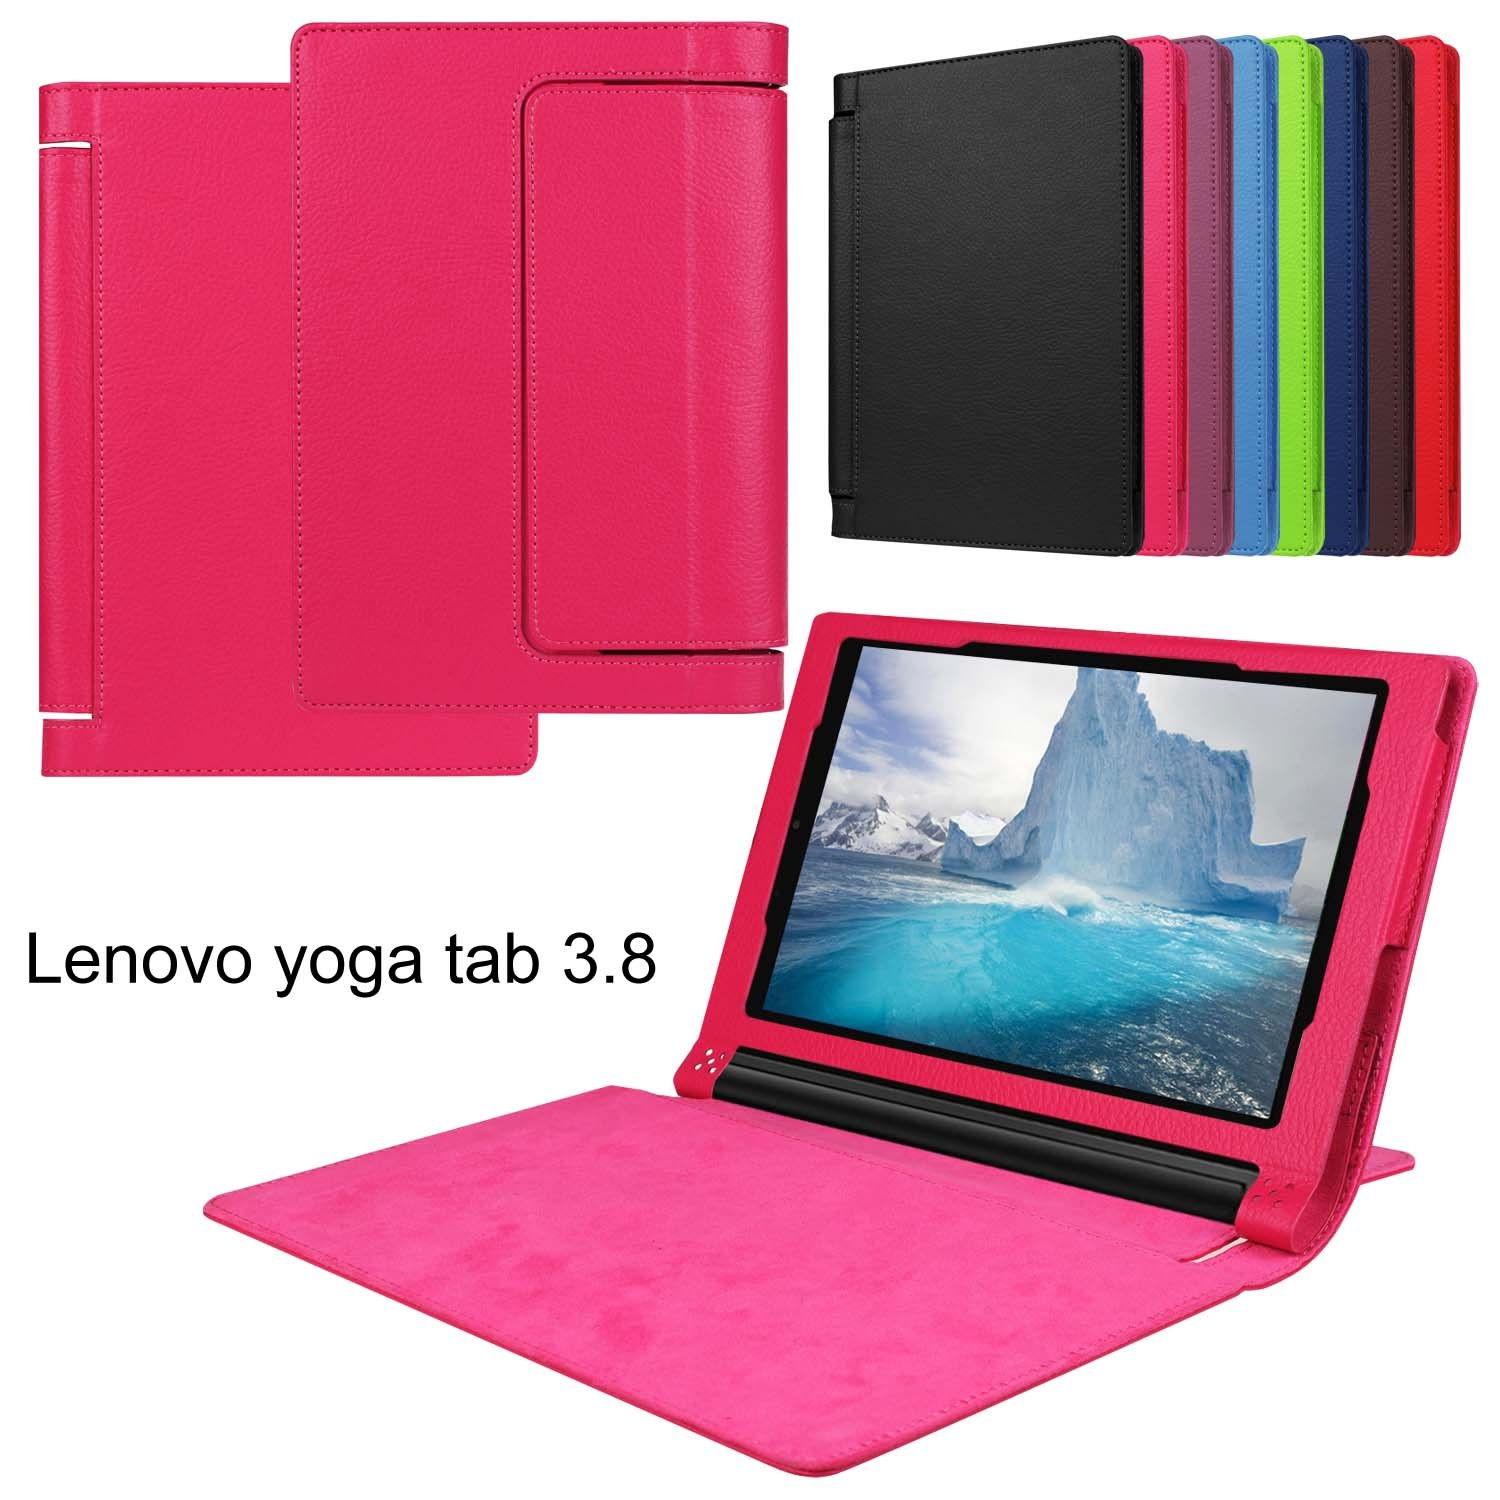 Asng Lenovo Yoga Tab 3 8 Case - Slim Folding Stand Cover Smart Case for 2015 Lenovo Yoga Tab3 8-Inch Tablet (Rose red)